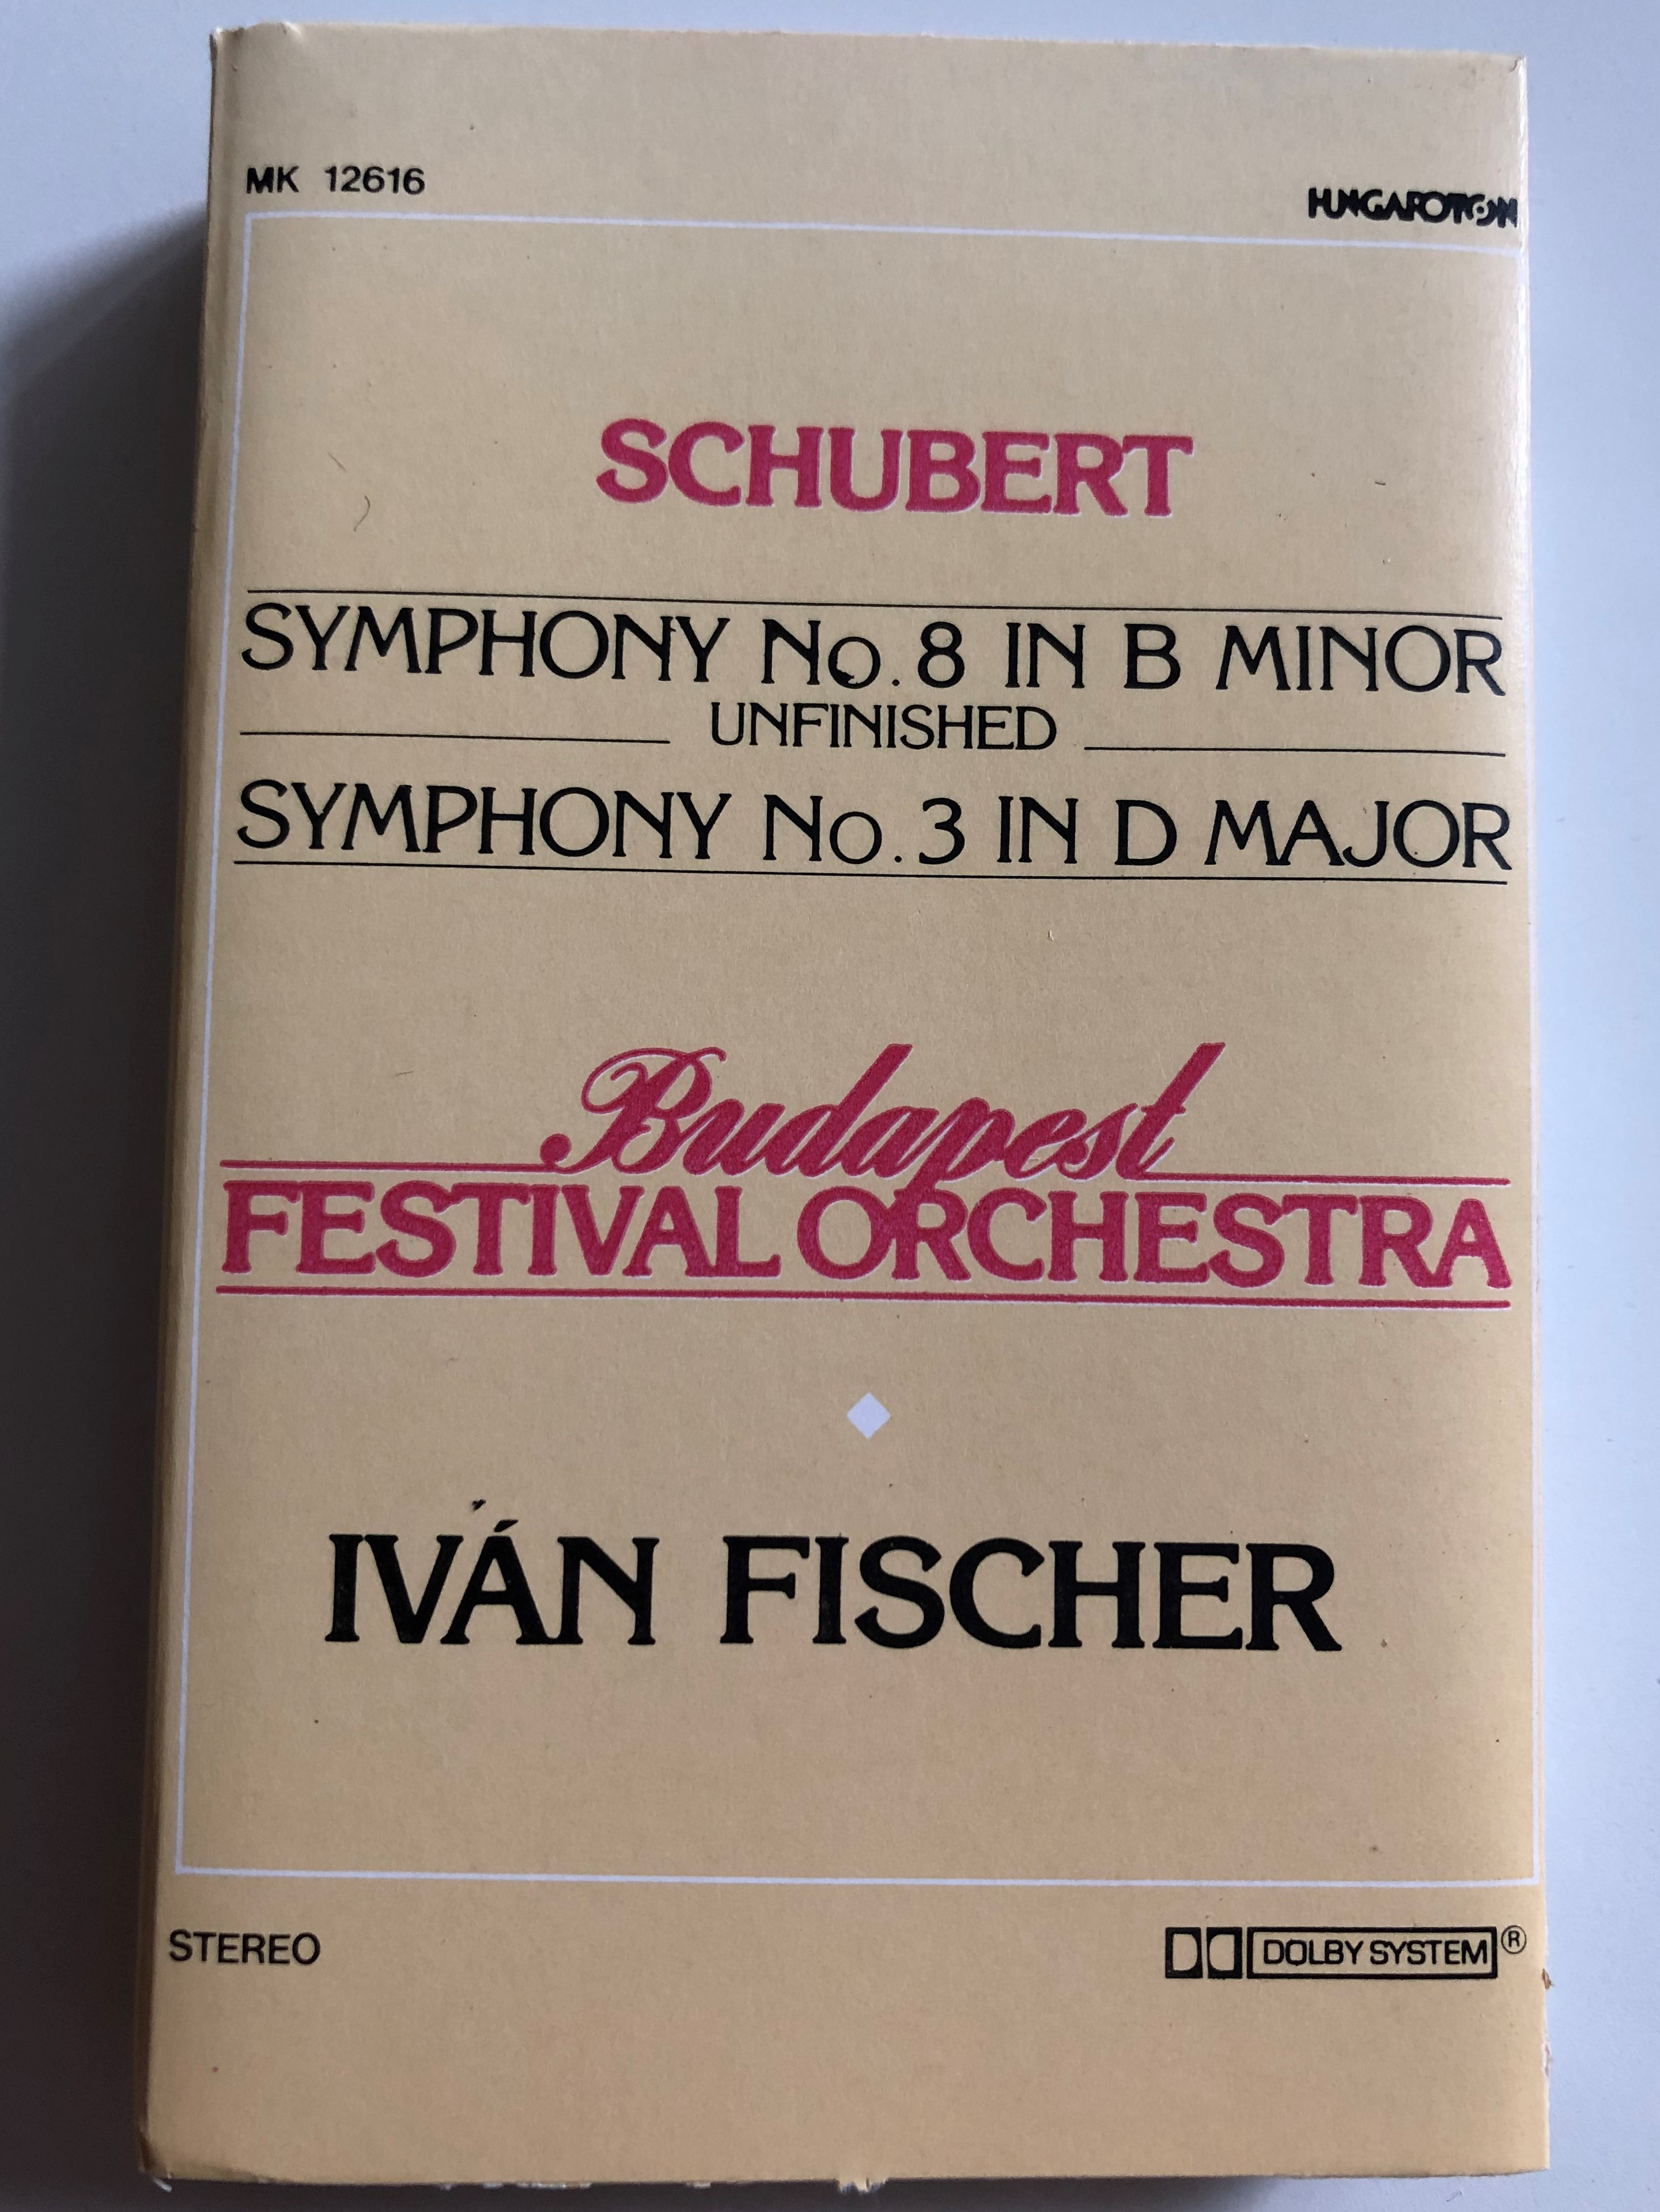 schubert-symphony-no.-8-in-b-minor-unfinished-symphony-no.-3-in-d-major-budapest-festival-orchestra-ivan-fischer-hungaroton-cassette-stereo-mk-12616-1-.jpg